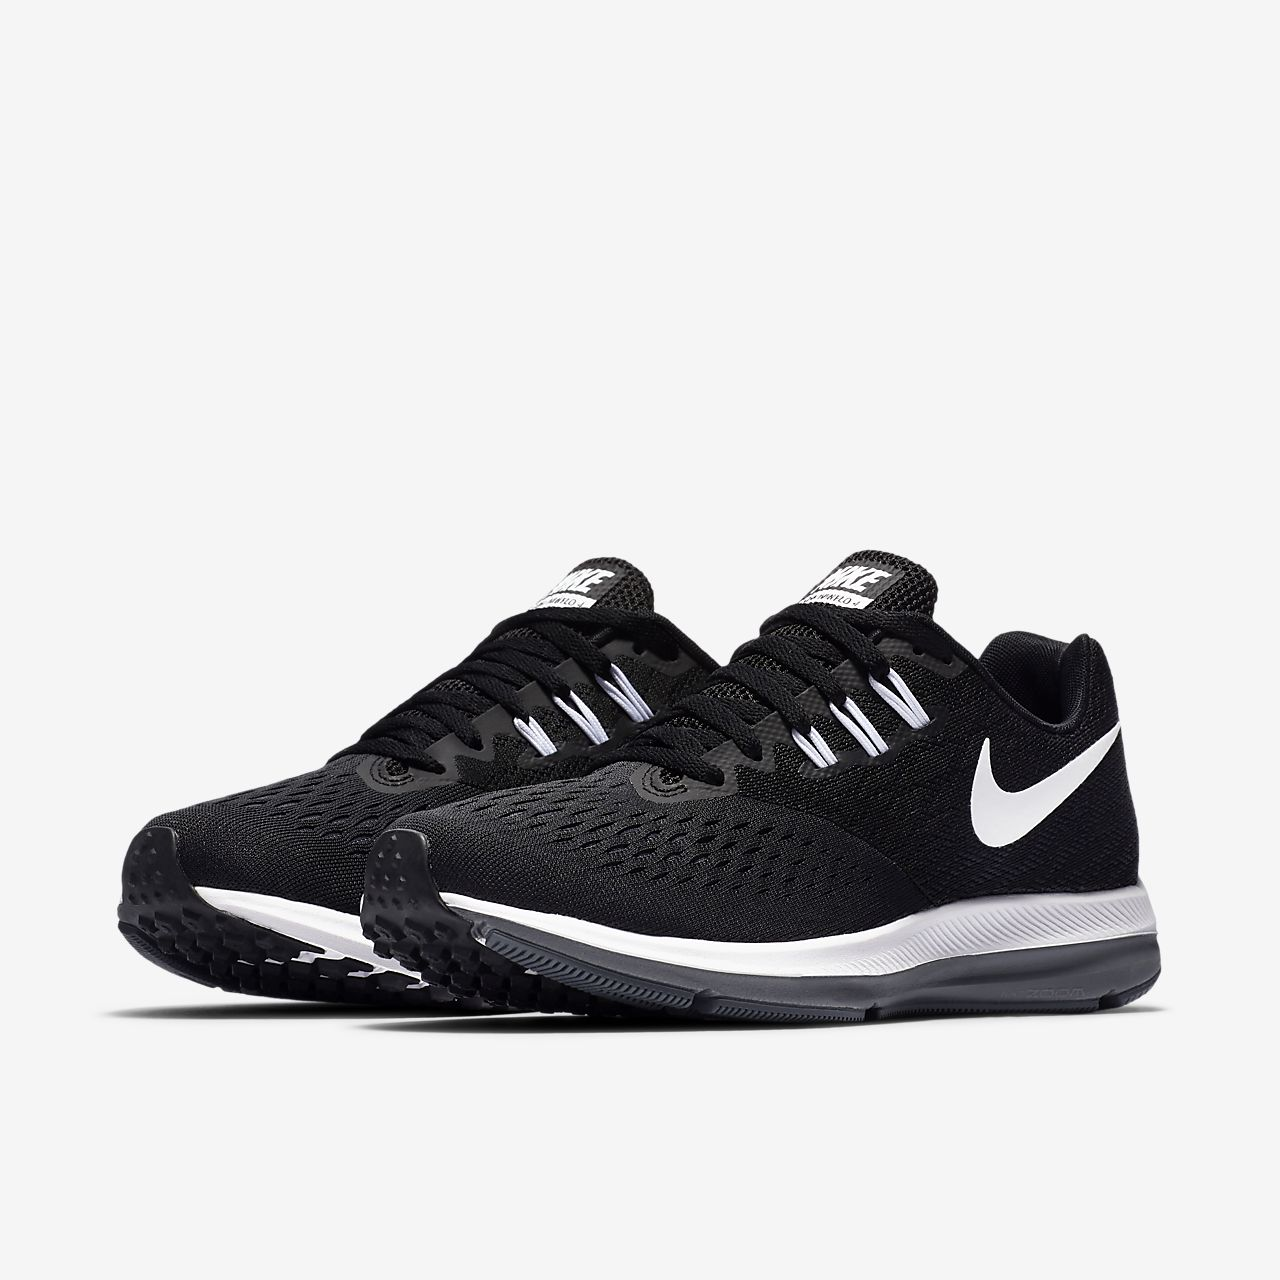 7 start Nike Mens Air Zoom Winflo Fashion 3 Running discounts Shoe Black/White